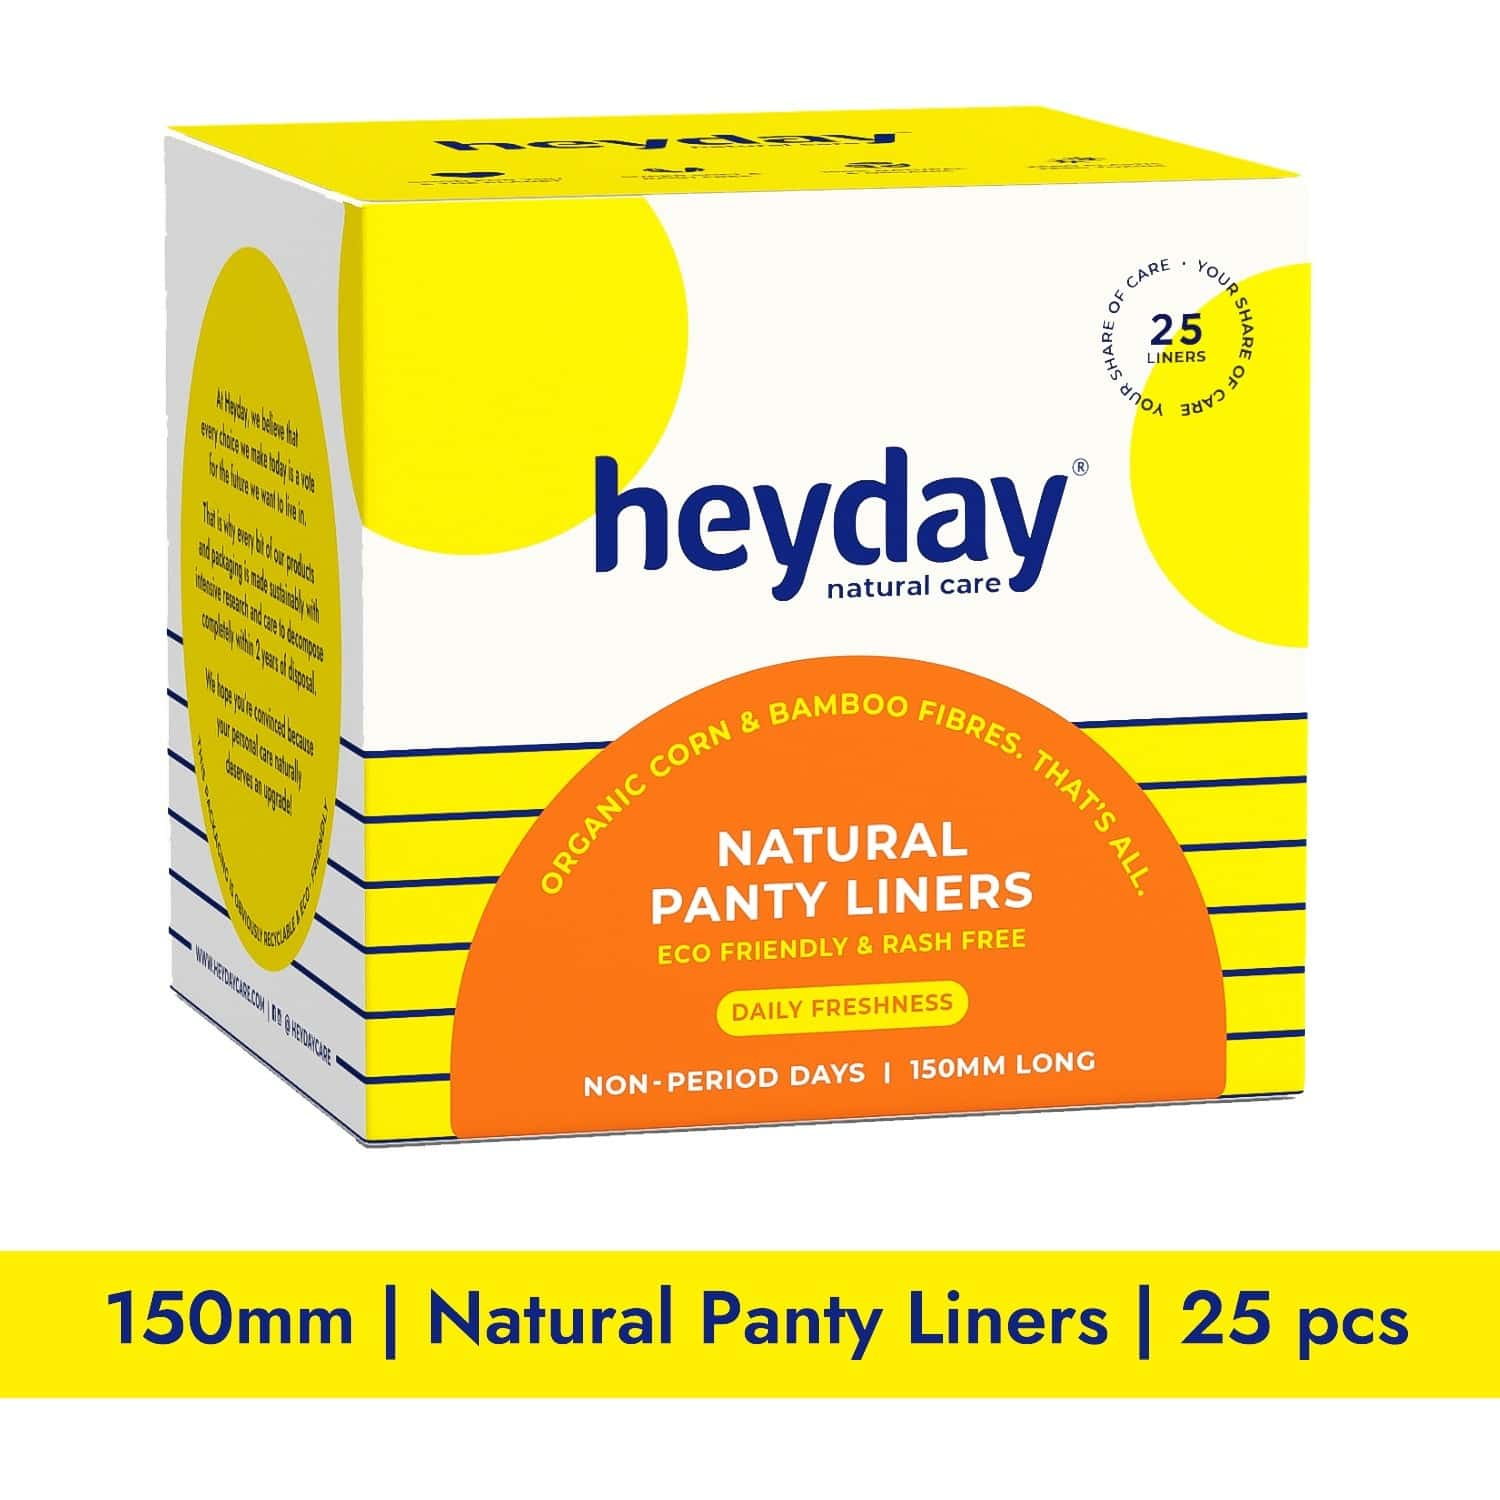 Heyday Natural & Organic Panty Liners (25 Liners)